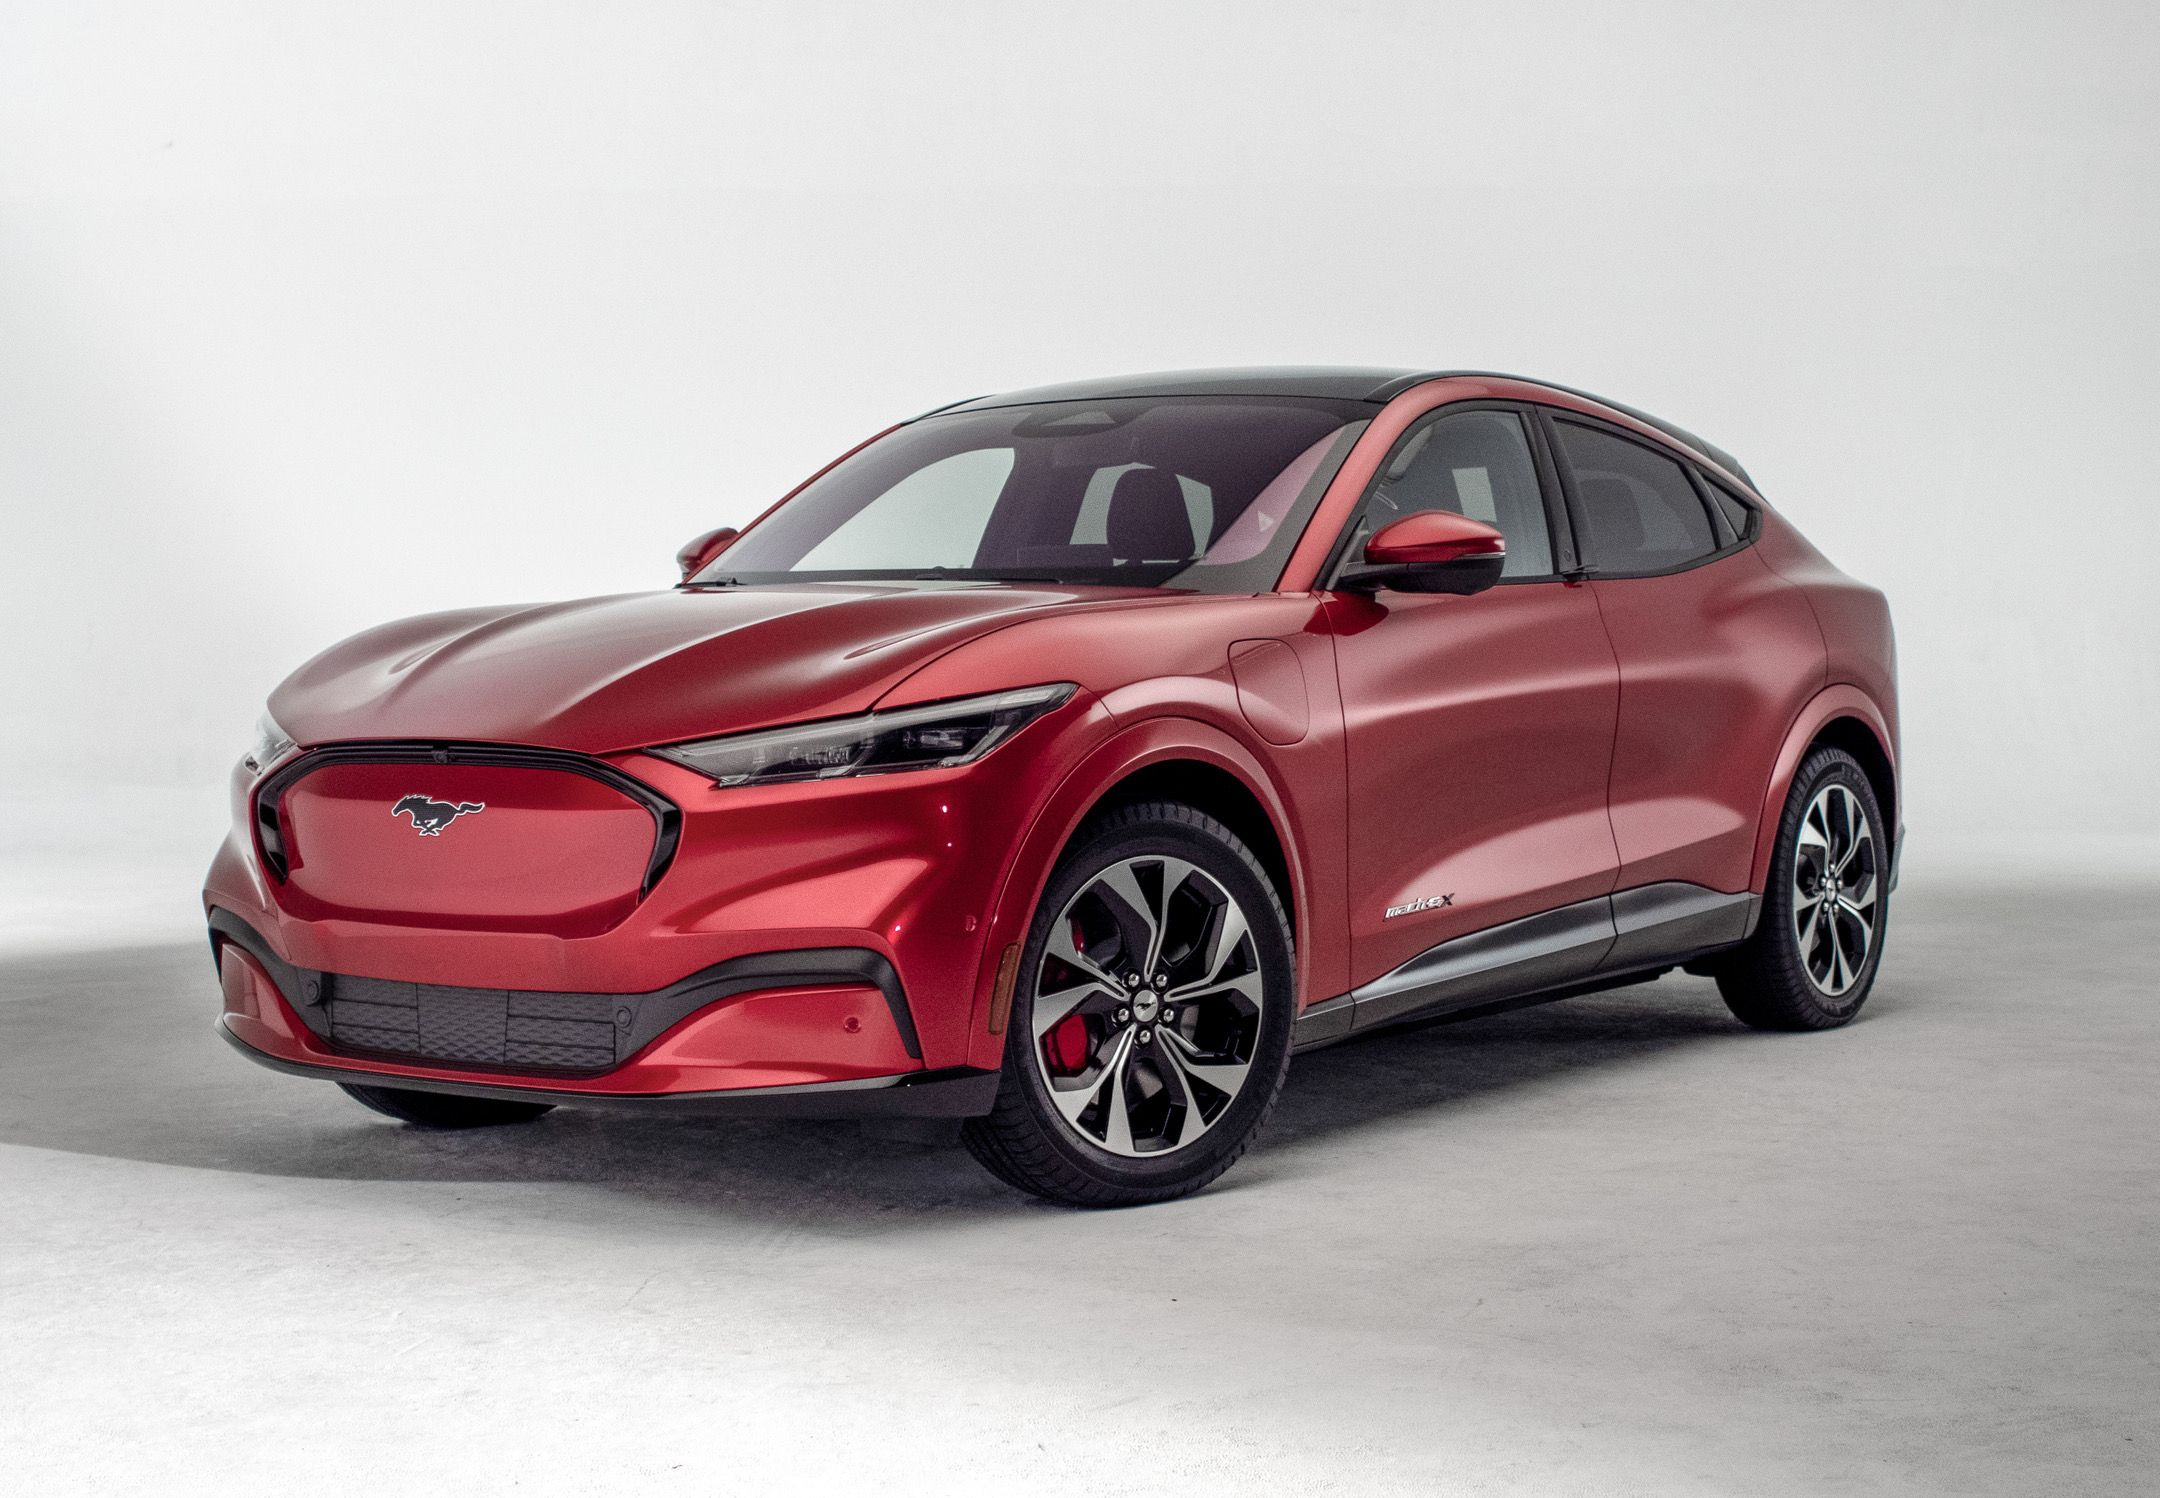 2021 Ford Mustang Mach E Electric Suv Revealed Get Photos Performance And Range Info Here Ford Mustang E Electric Suv